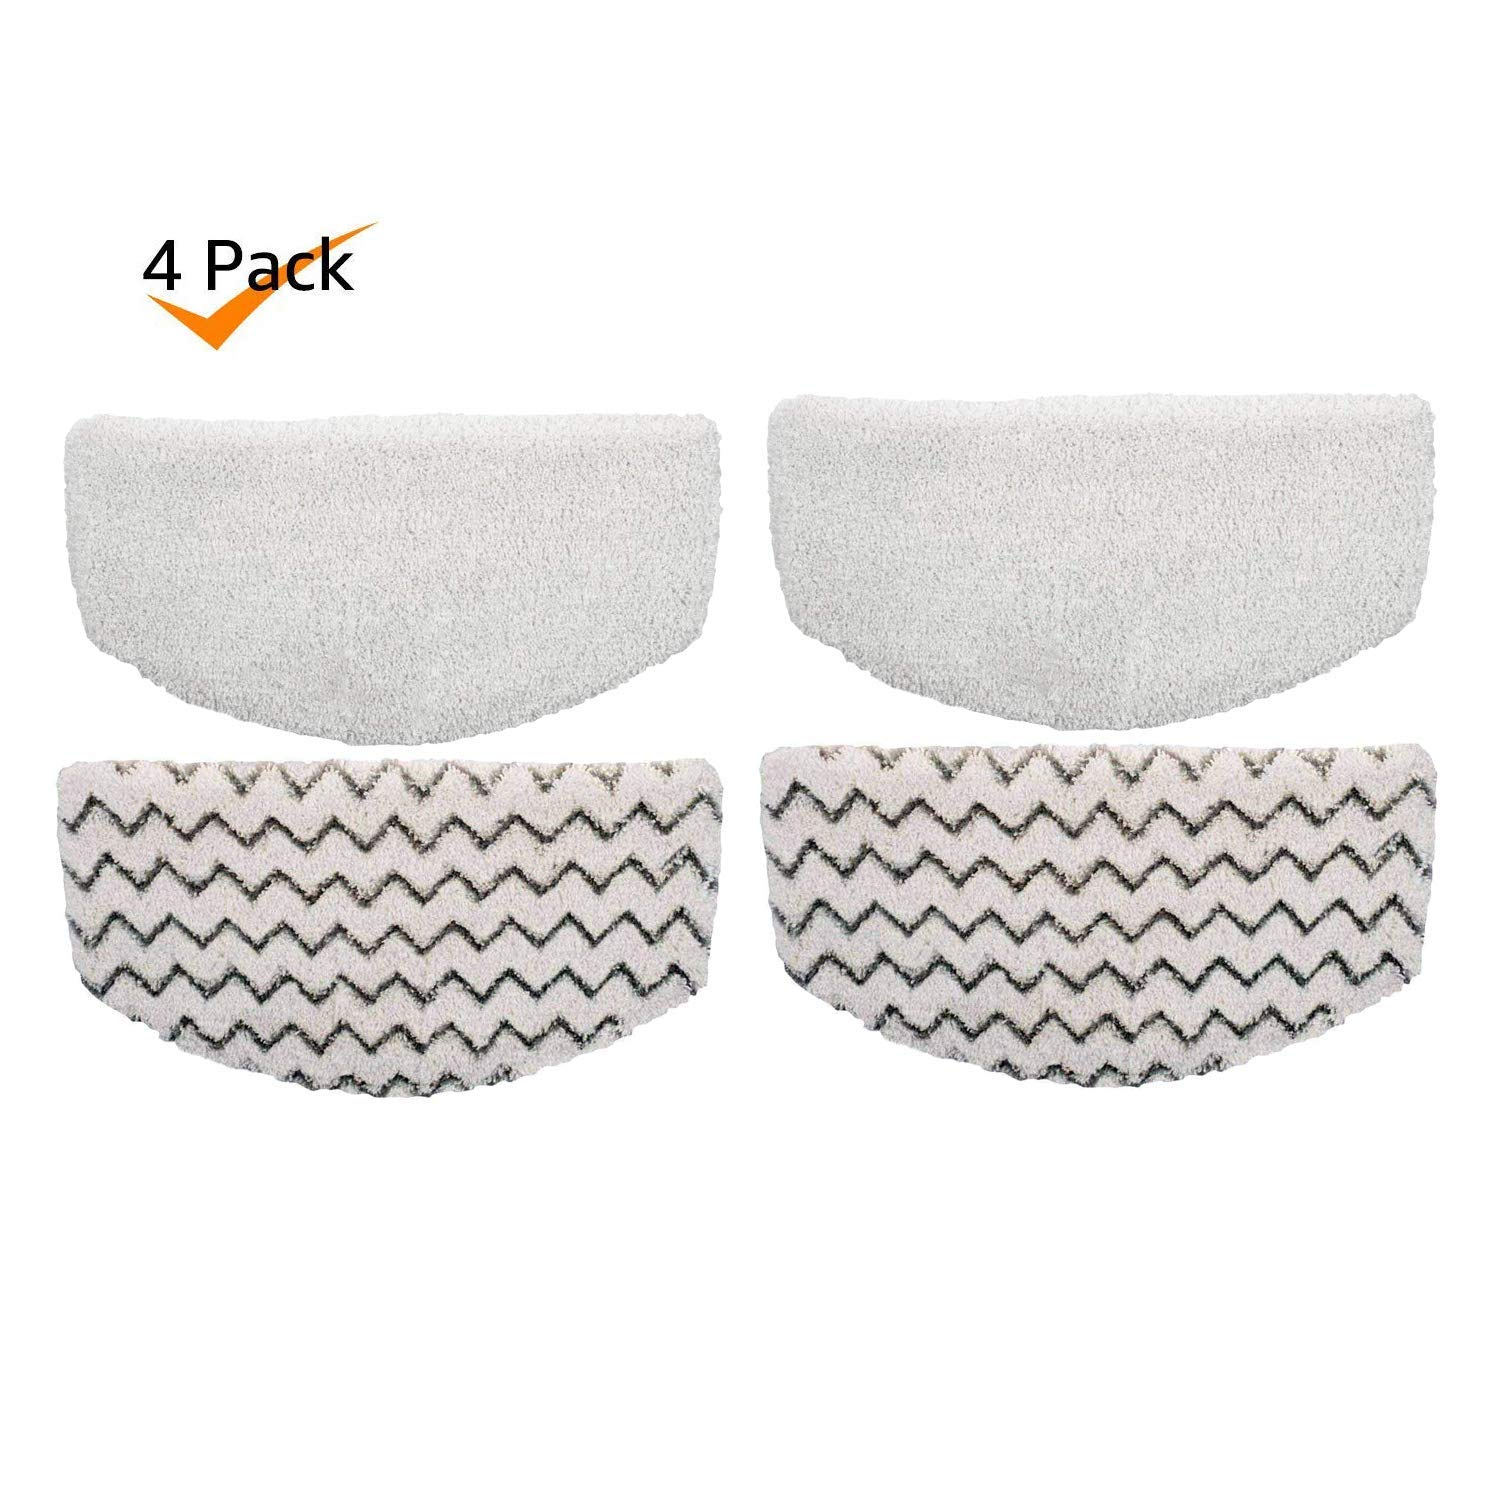 ESO 4 Pack Steam Mop Pads for Bissell Powerfresh Steam Mop 1940